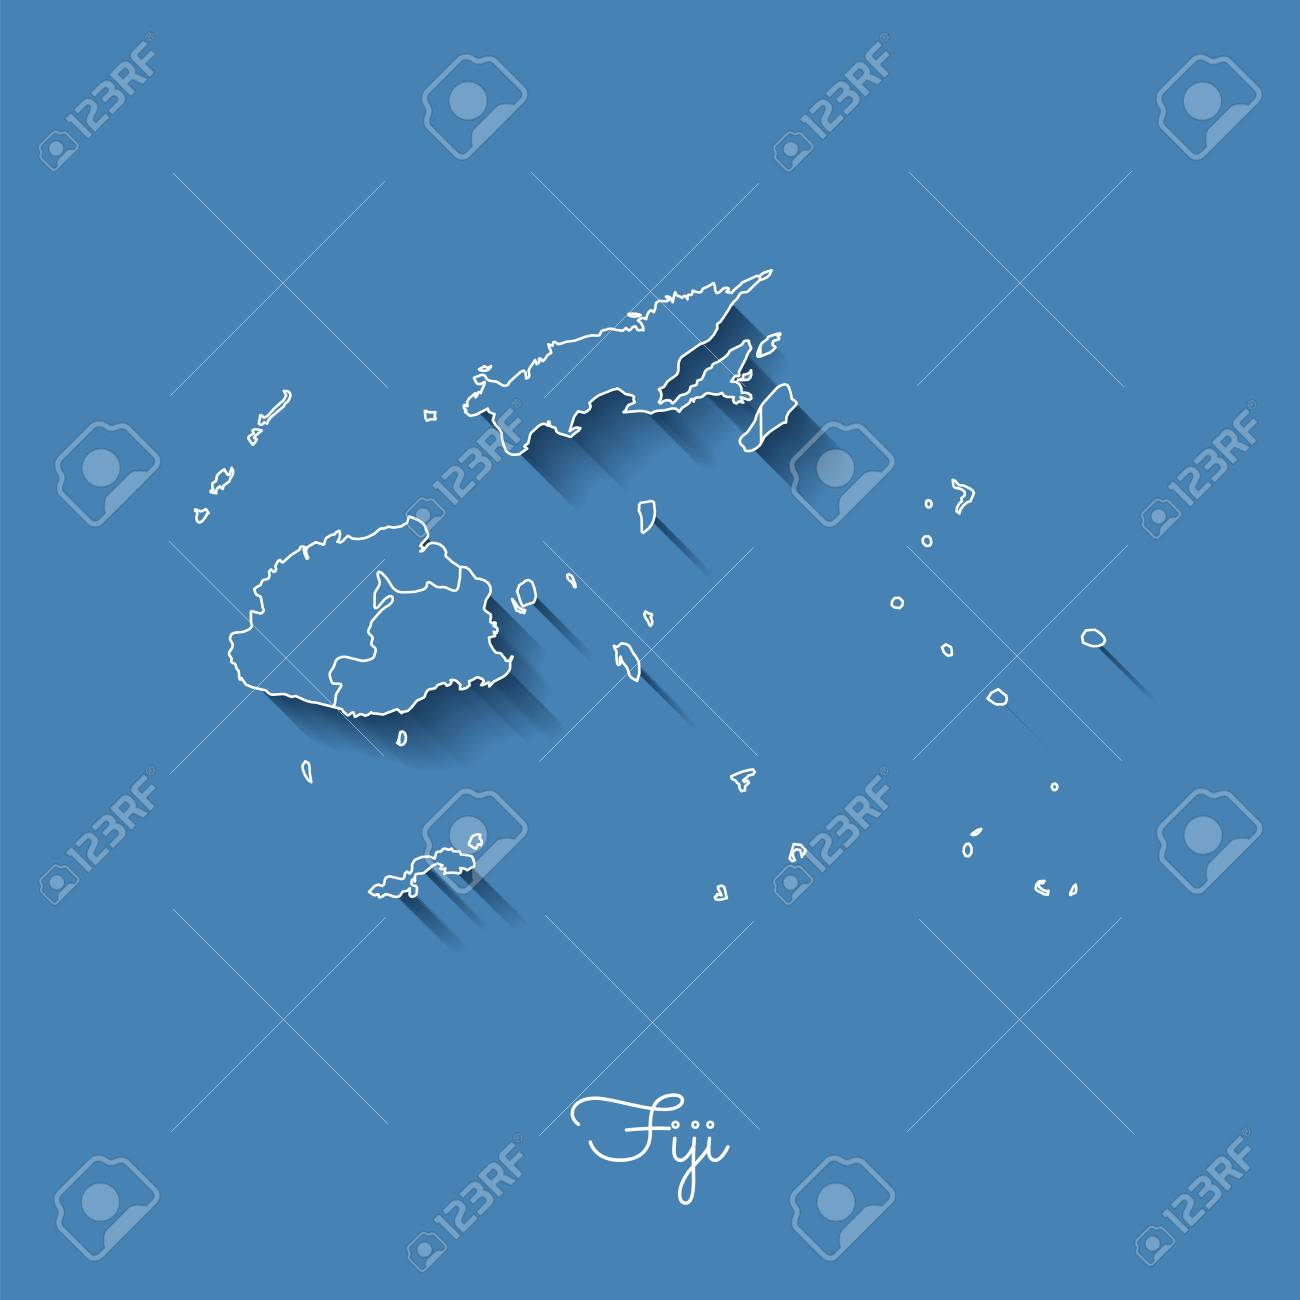 Fiji Region Map Fiji Region Map: Blue With White Outline And Shadow On Blue